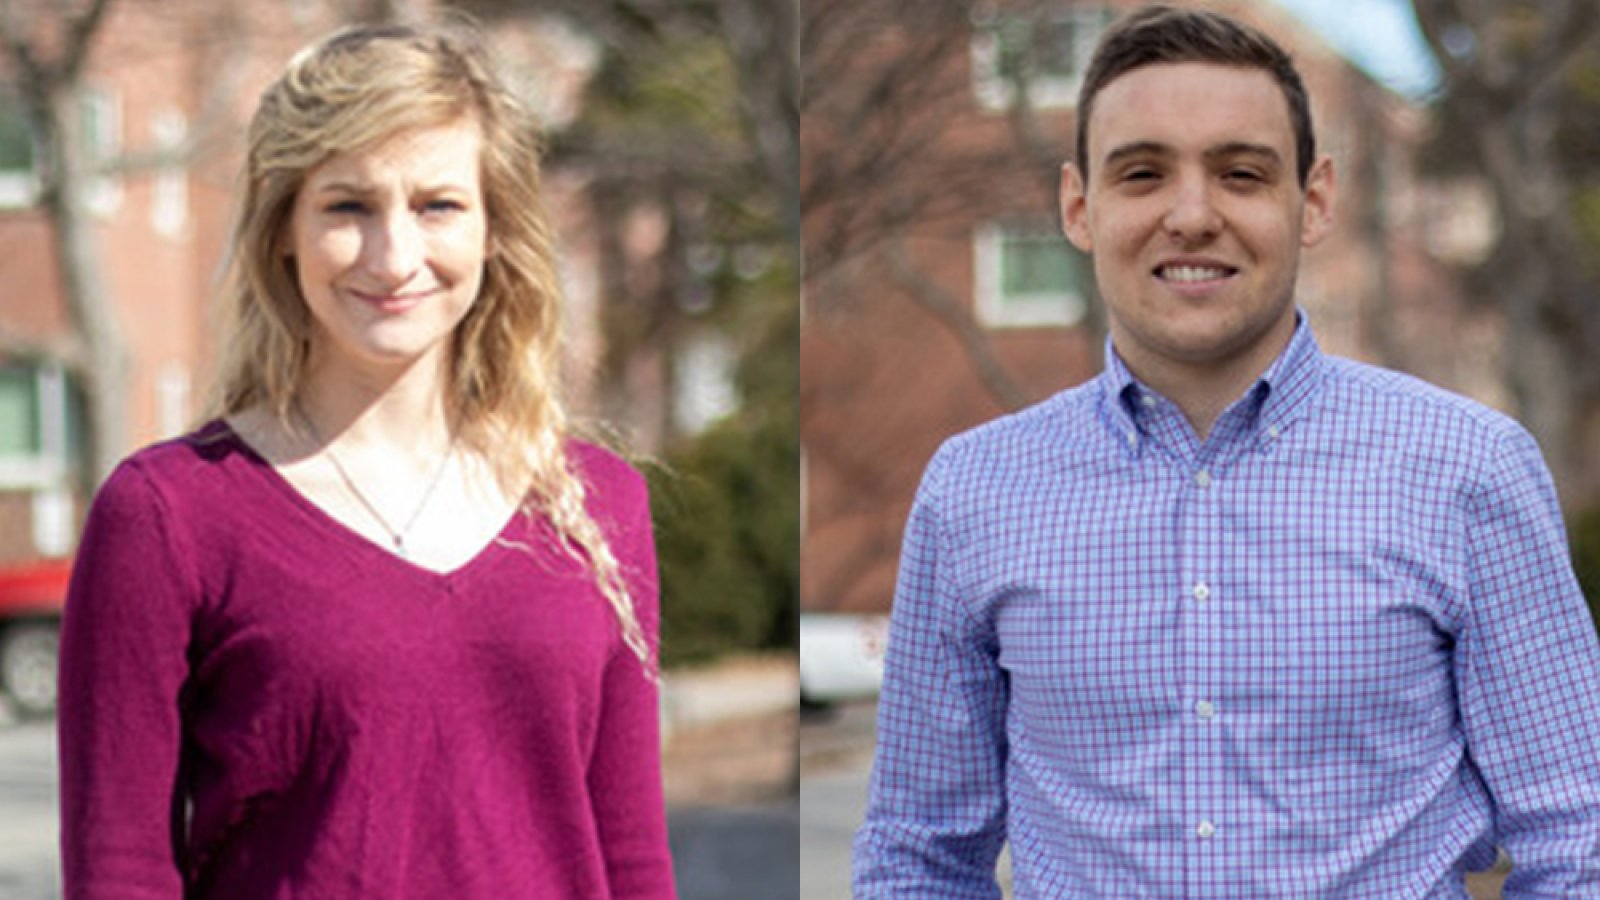 Madison Miller (left), a senior in chemical and biomolecular engineering, and Agustin Olivo, a graduate student in biological systems engineering, are among the 10 University of Nebraska-Lincoln students chosen to receive the 2020 Student Luminary Awards.